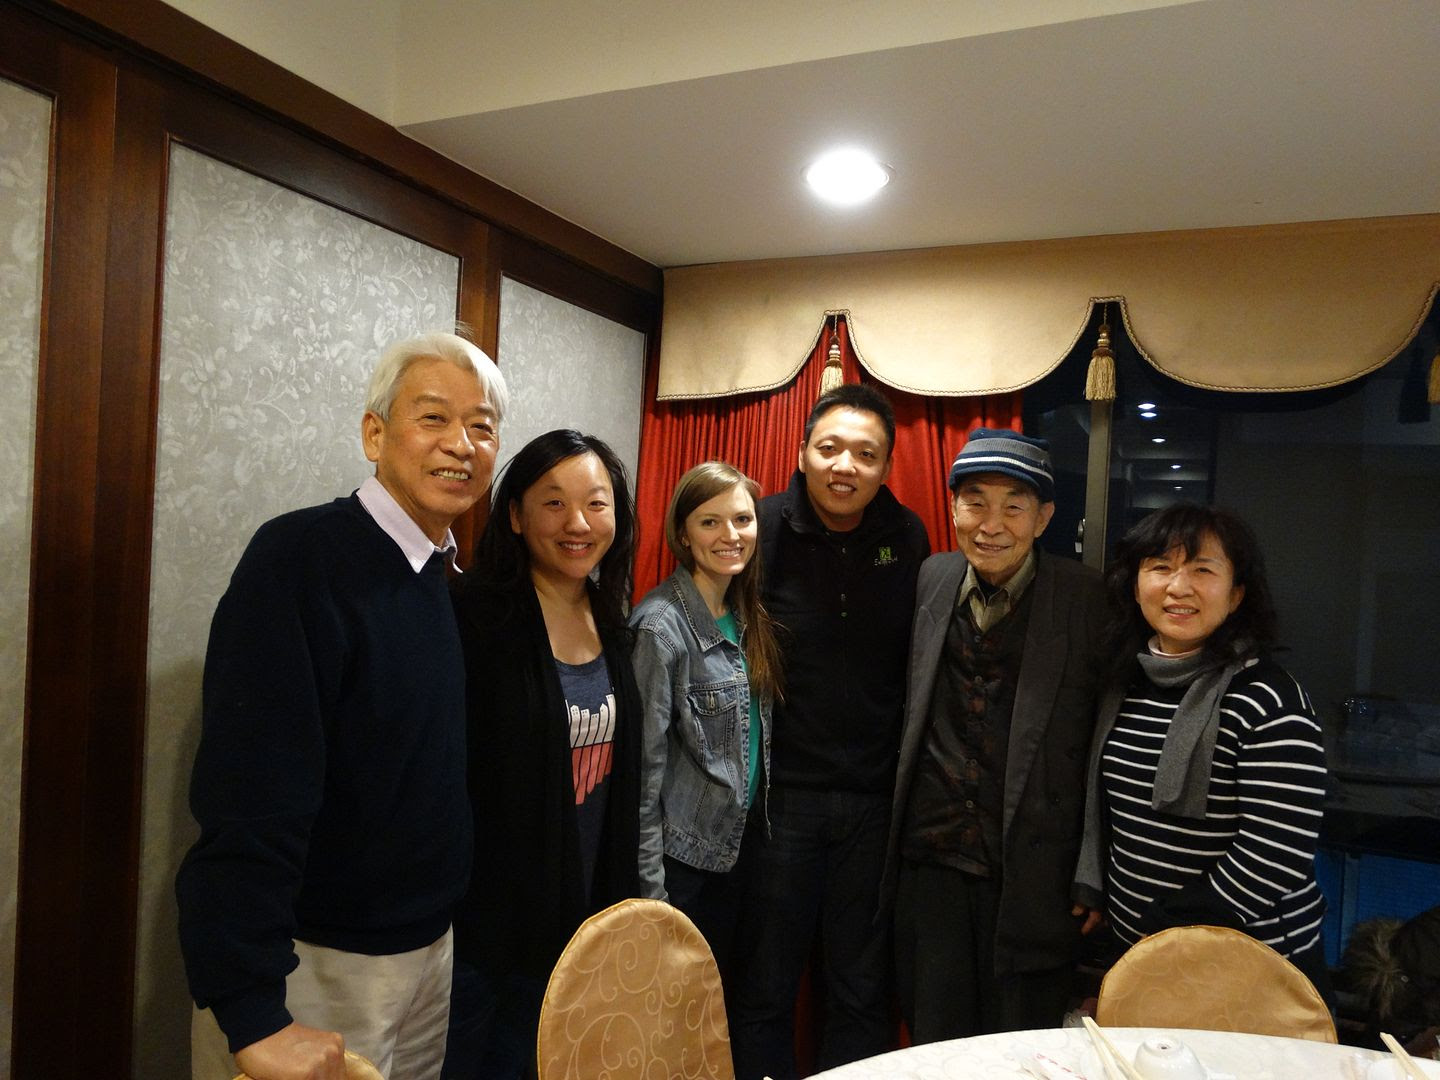 Dinner with the World's Oldest Bird Calligrapher in Kaohsiung, Taiwan